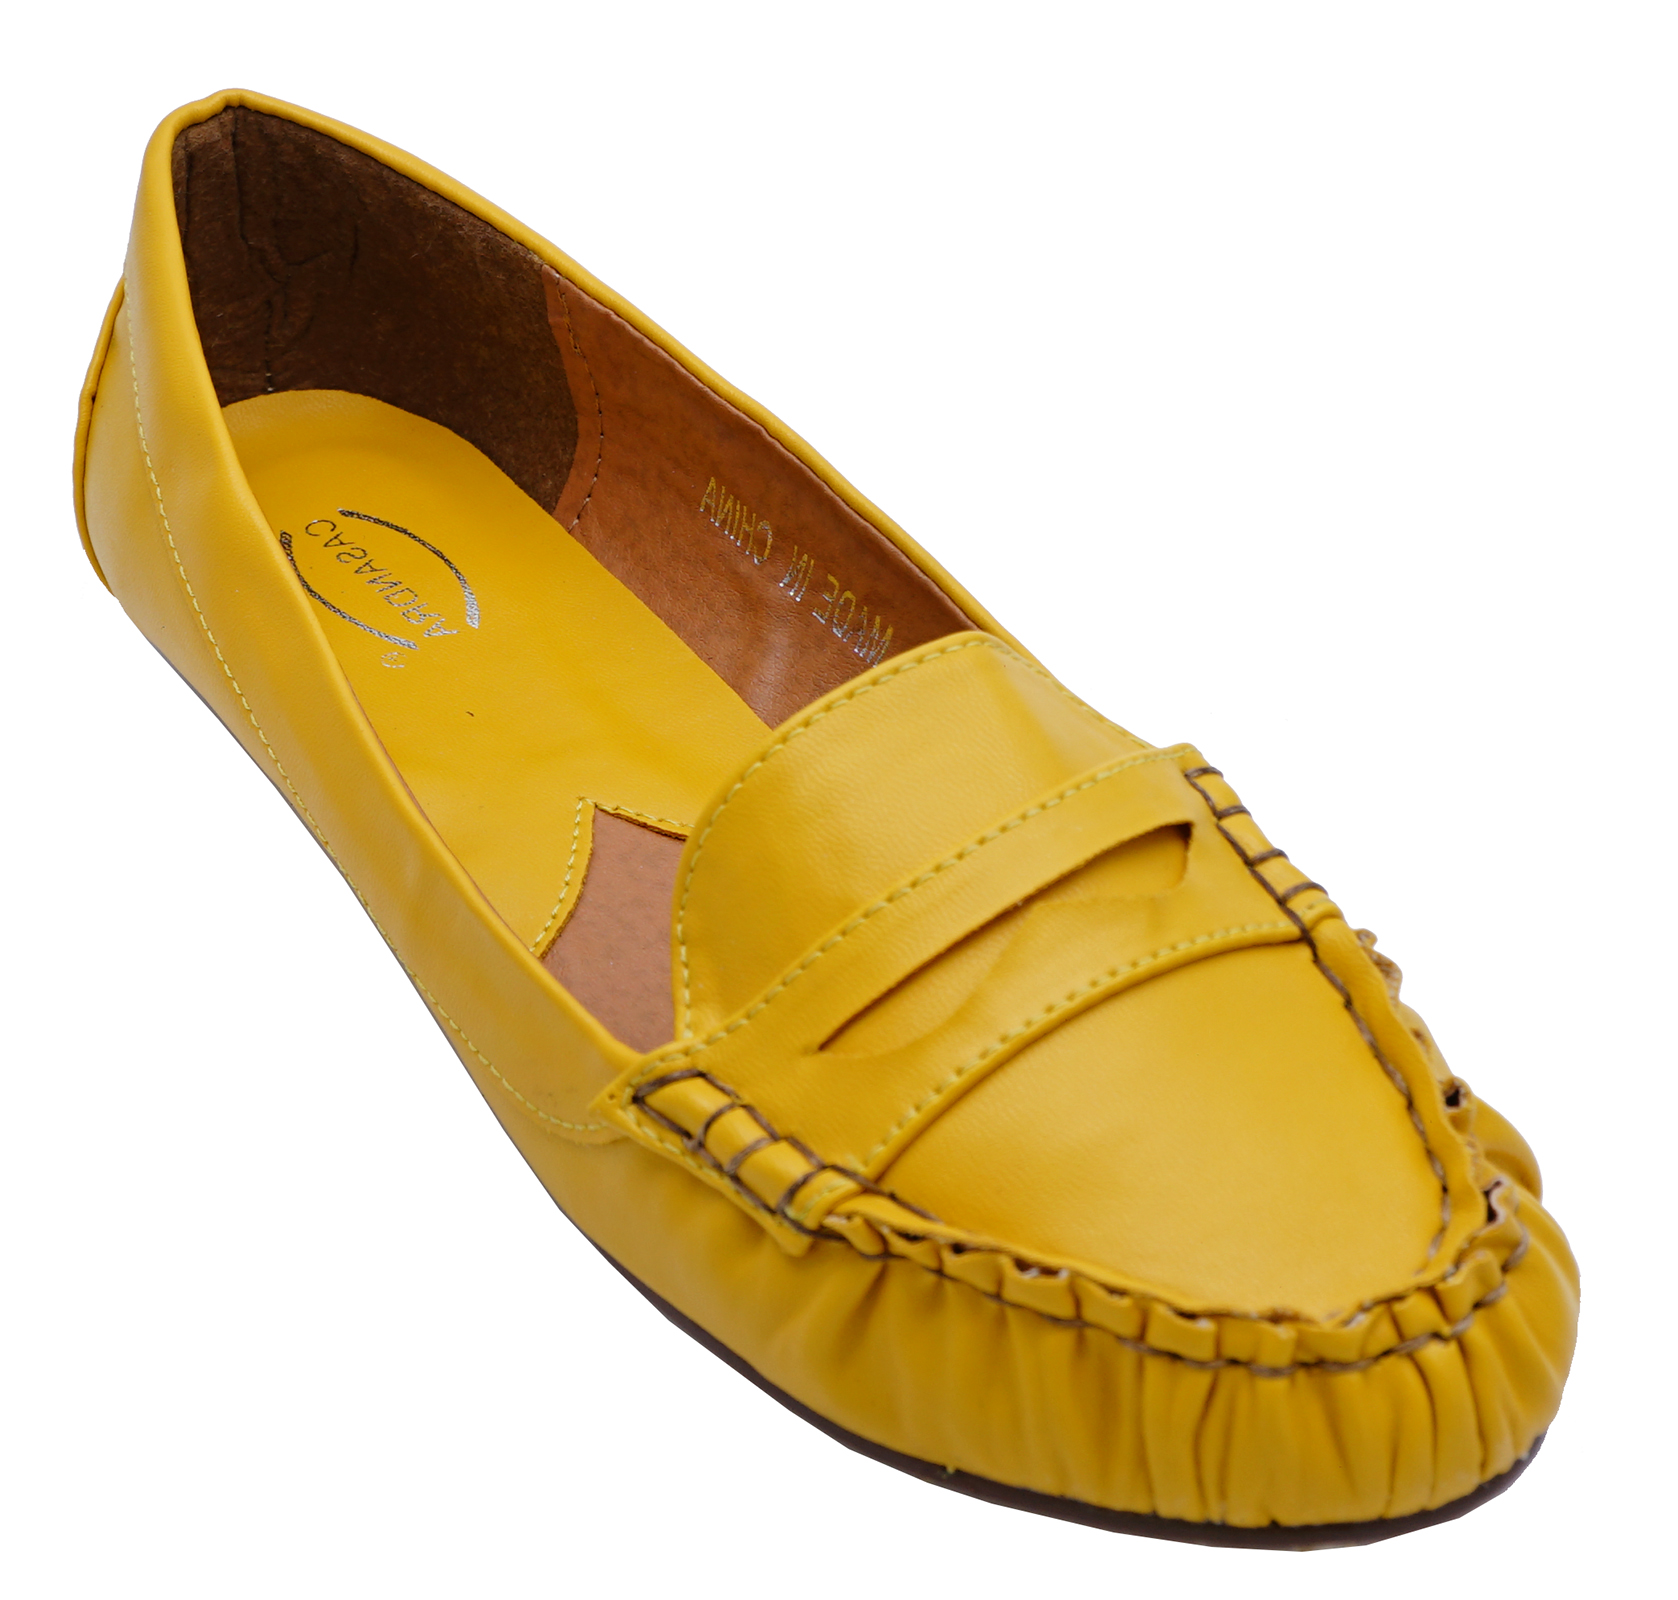 3956fb2c2ea Sentinel LADIES YELLOW FLAT SLIP-ON LOAFERS SMART COMFY WORK MOCCASIN SHOES  PUMPS 3-8